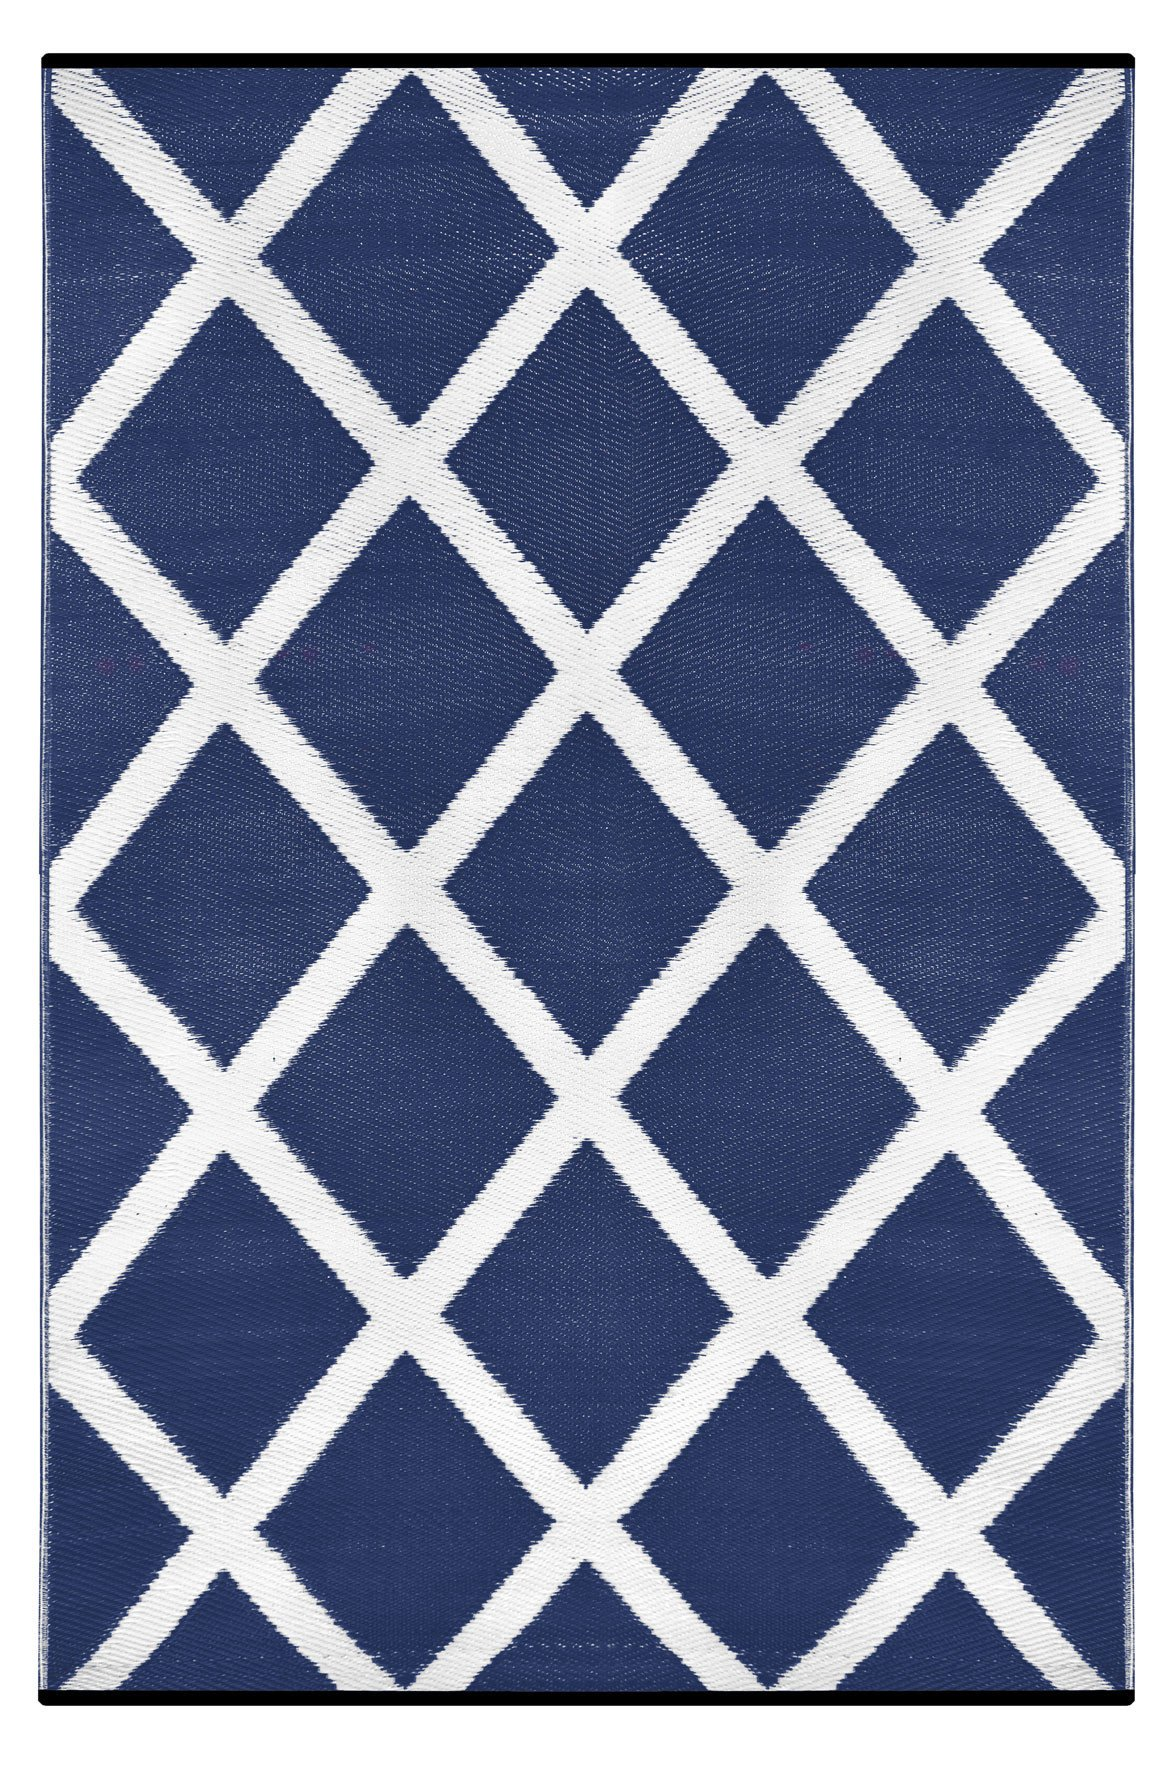 blue rug diamond navy blue and white rug - greendecore.co.uk - 1 ... HVKYDAO